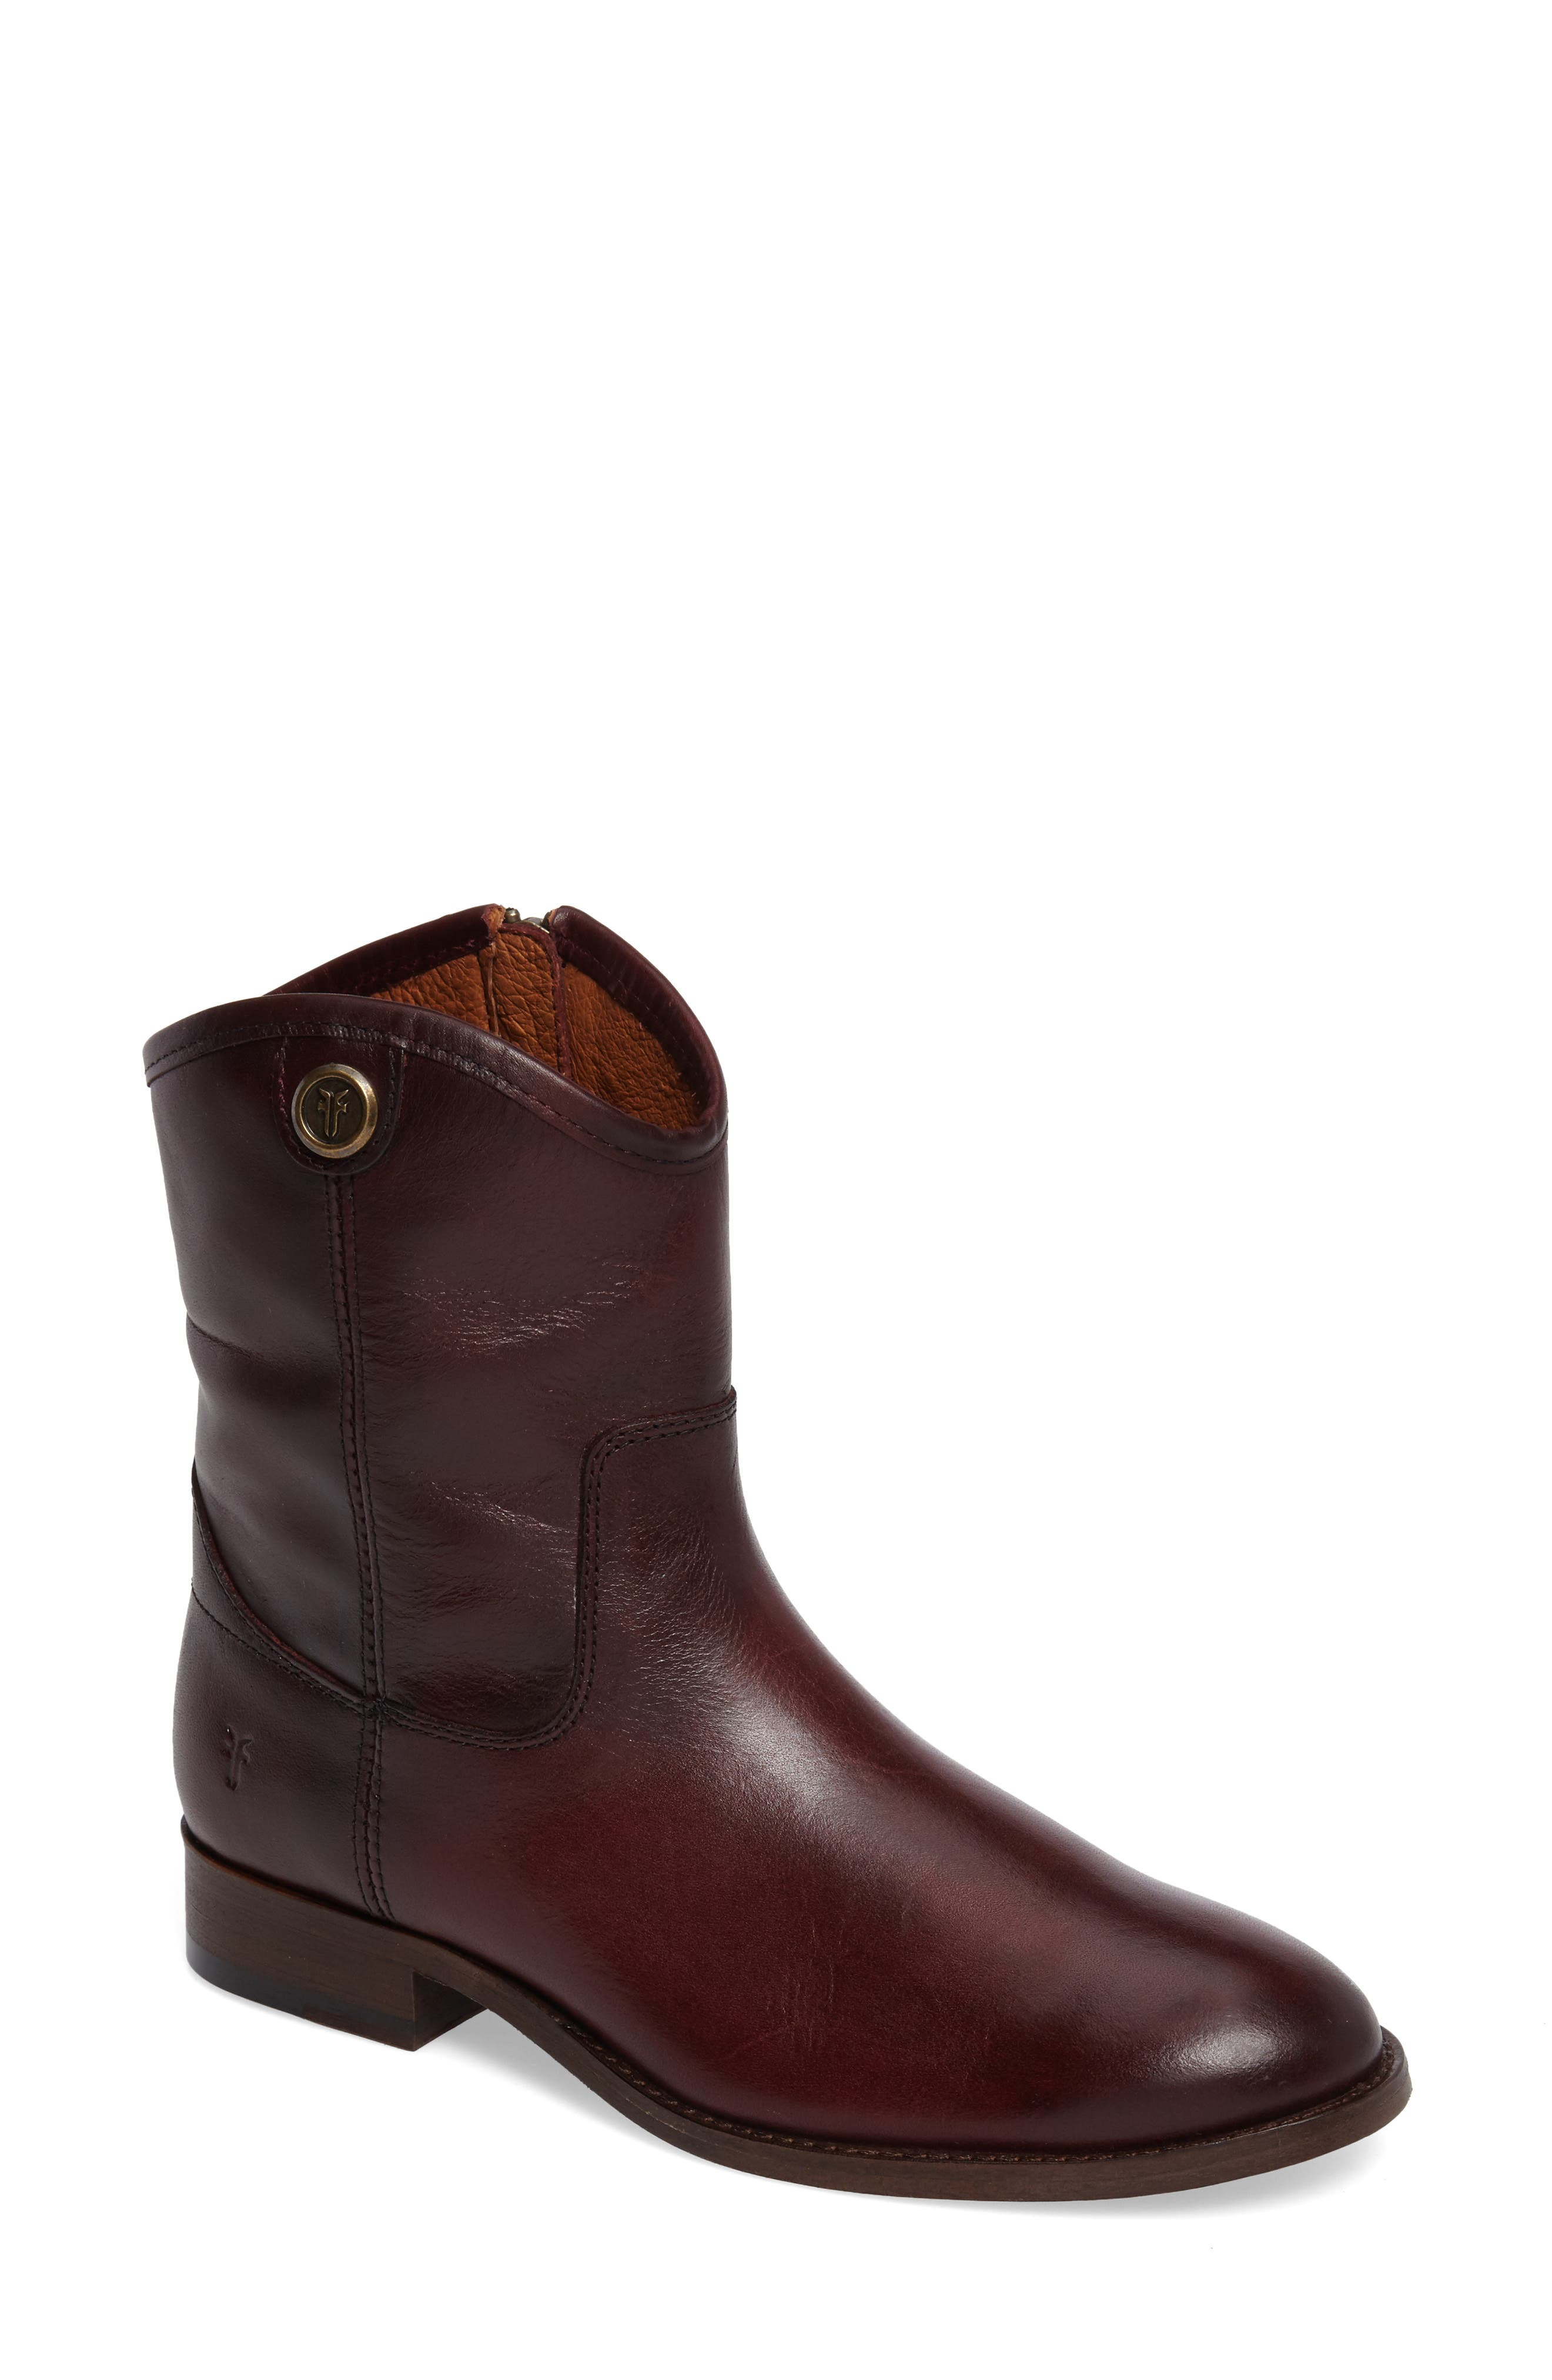 Melissa Short 2 Boot,                         Main,                         color, Wine Leather